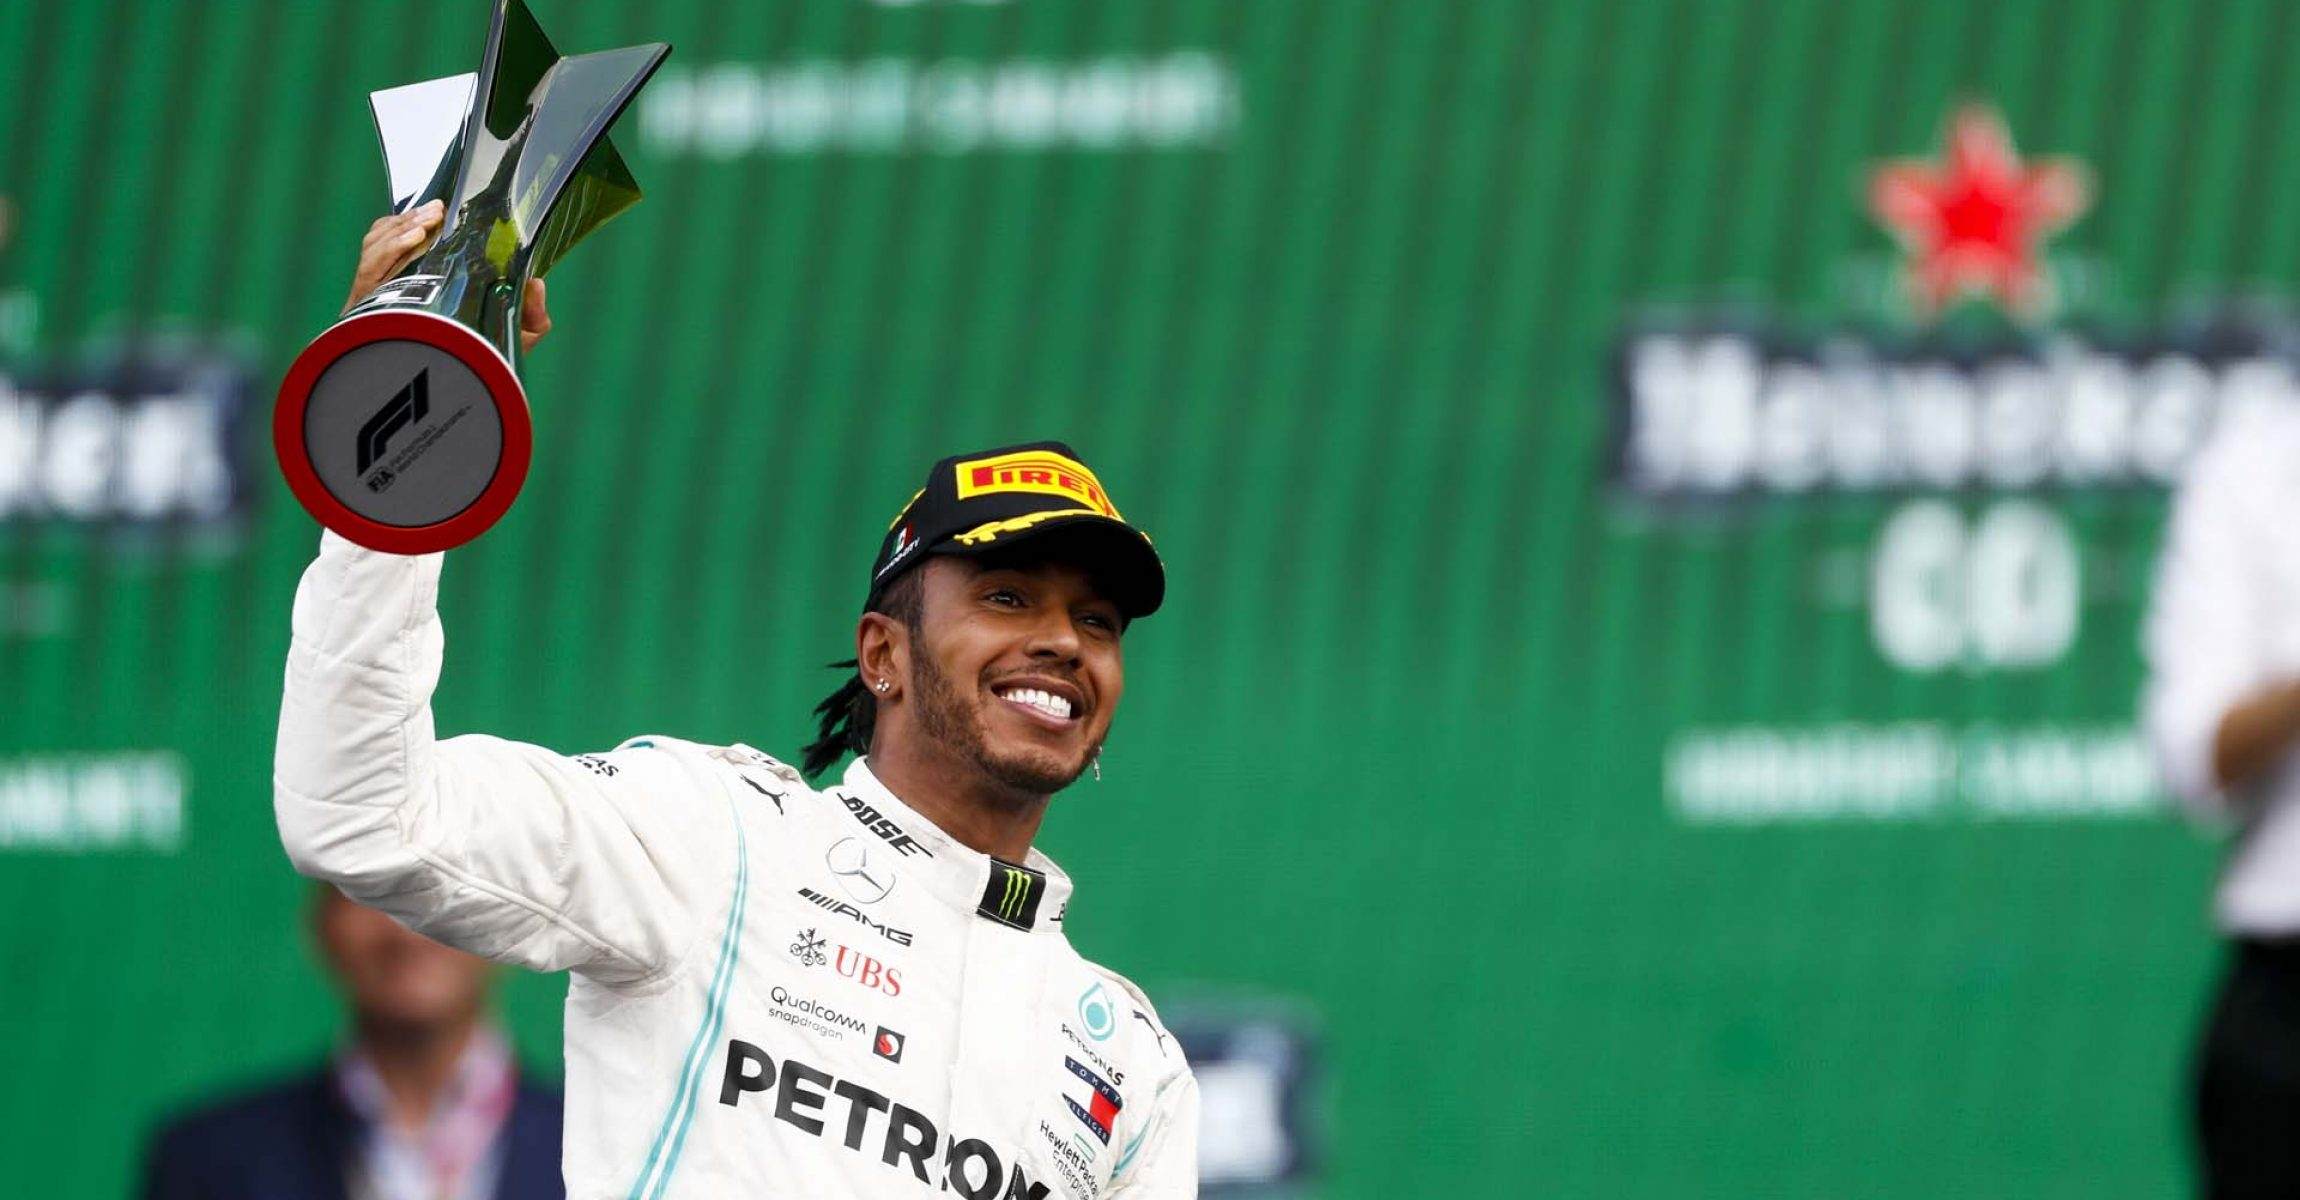 MEXICO CITY - OCTOBER 27: Race winner Lewis Hamilton, Mercedes AMG F1 on the podium with the trophy during the 2019 Formula One Mexican Grand Prix at Autodromo Hermanos Rodriguez, on October 27, 2019 in Mexico City, Mexico. (Photo by Glenn Dunbar / LAT Images)